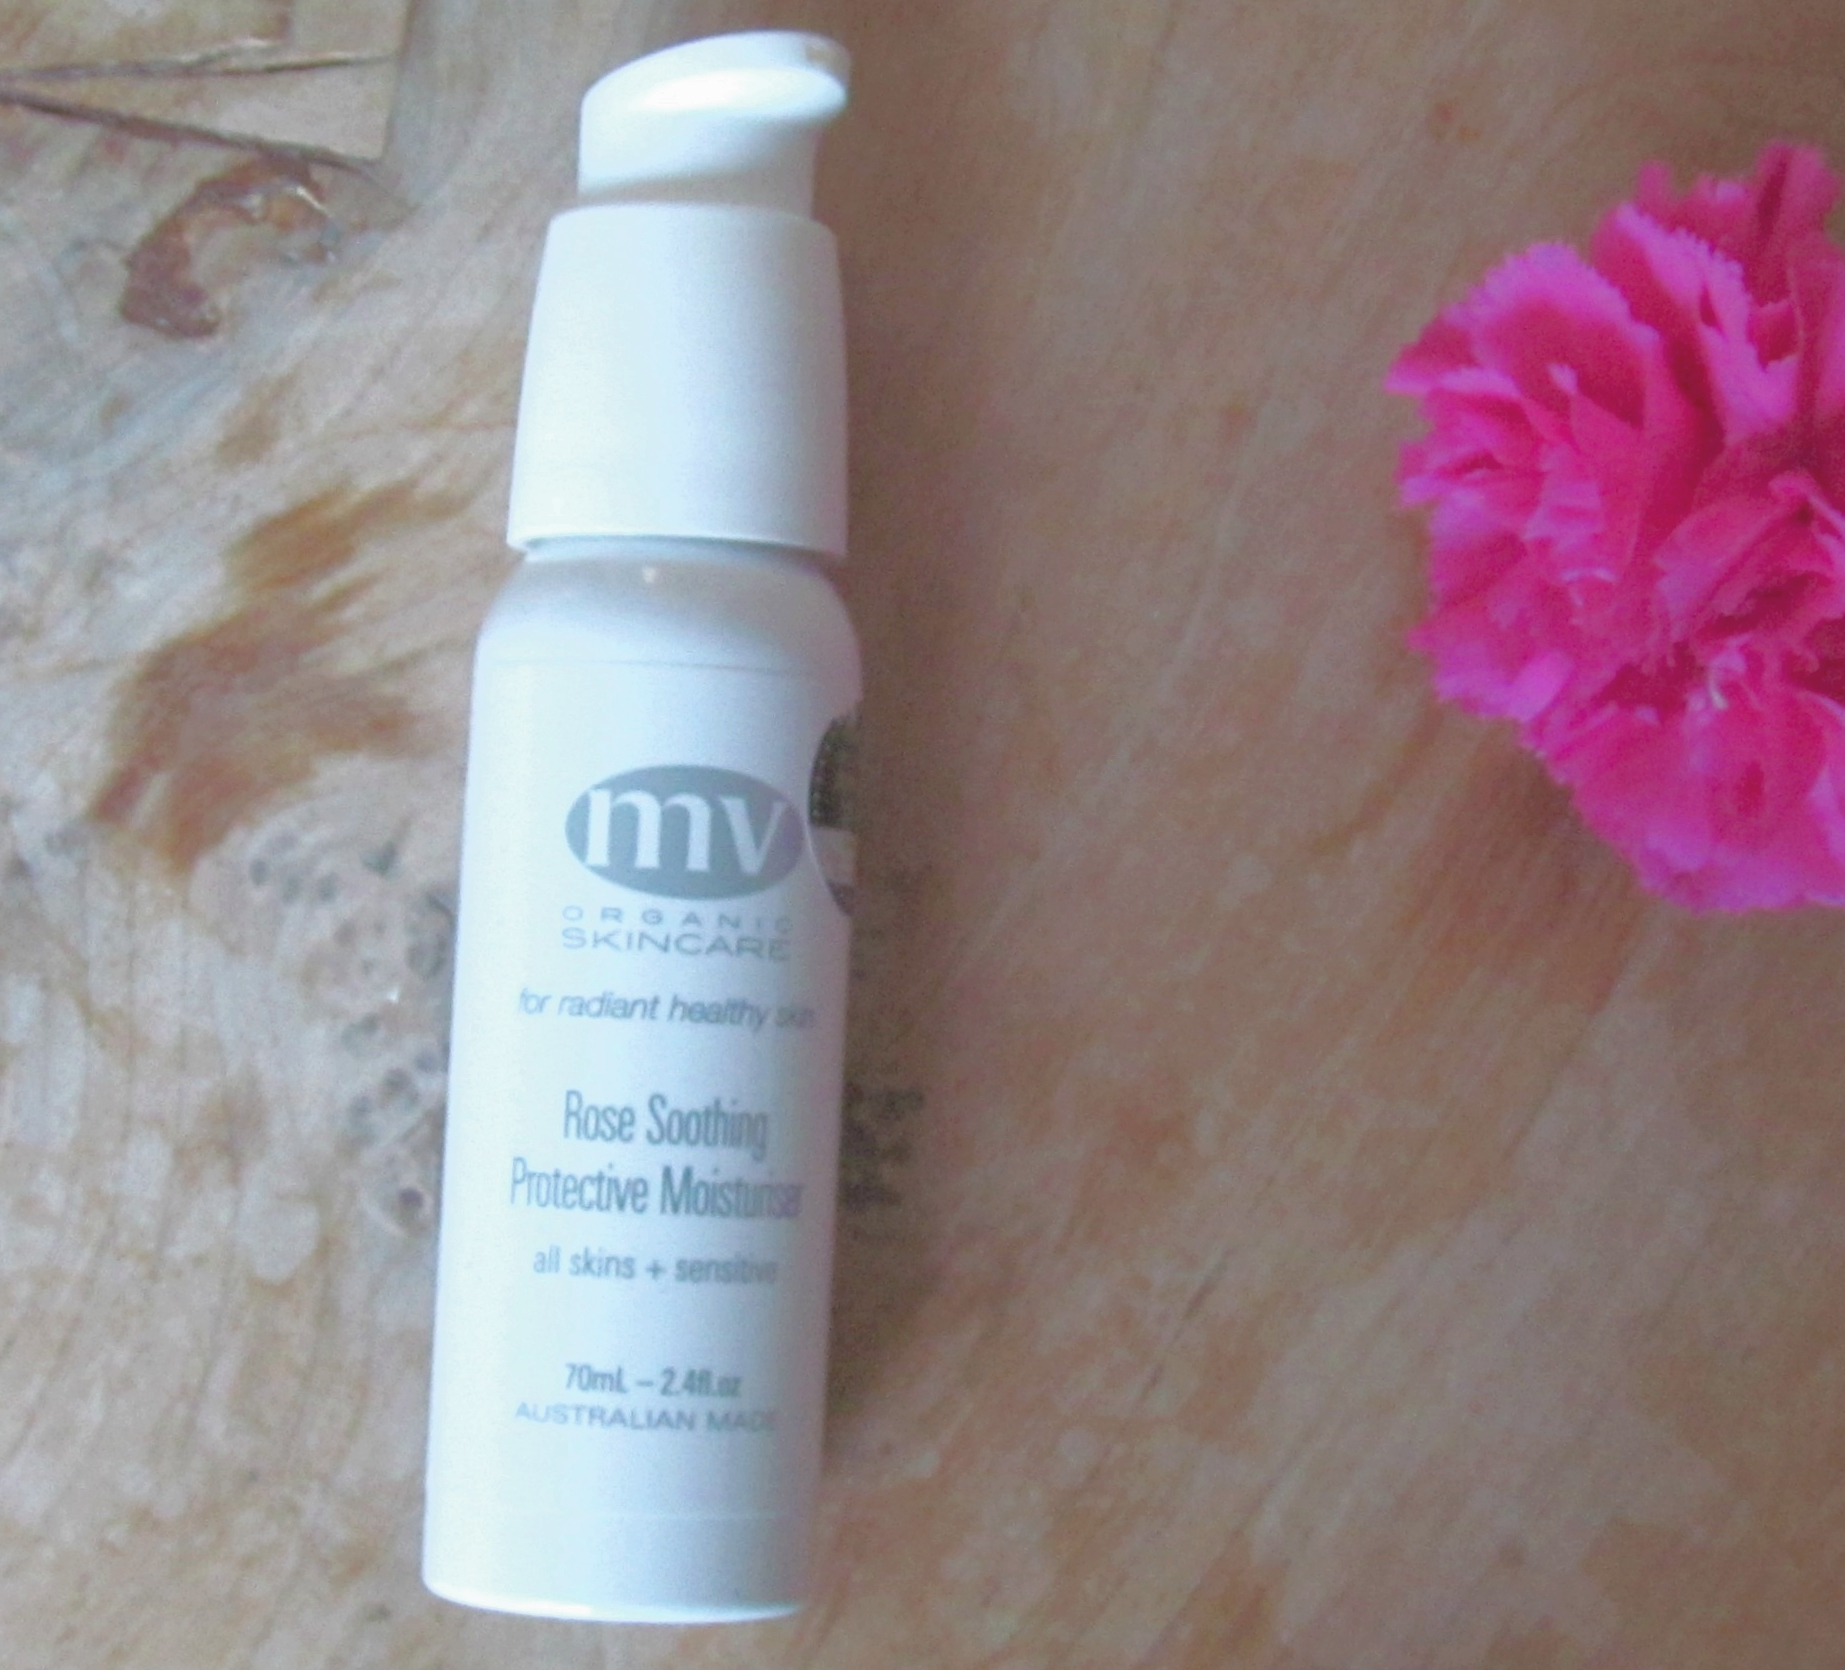 Pay day treat: MV Organics Rose Soothing Protective Moisturiser